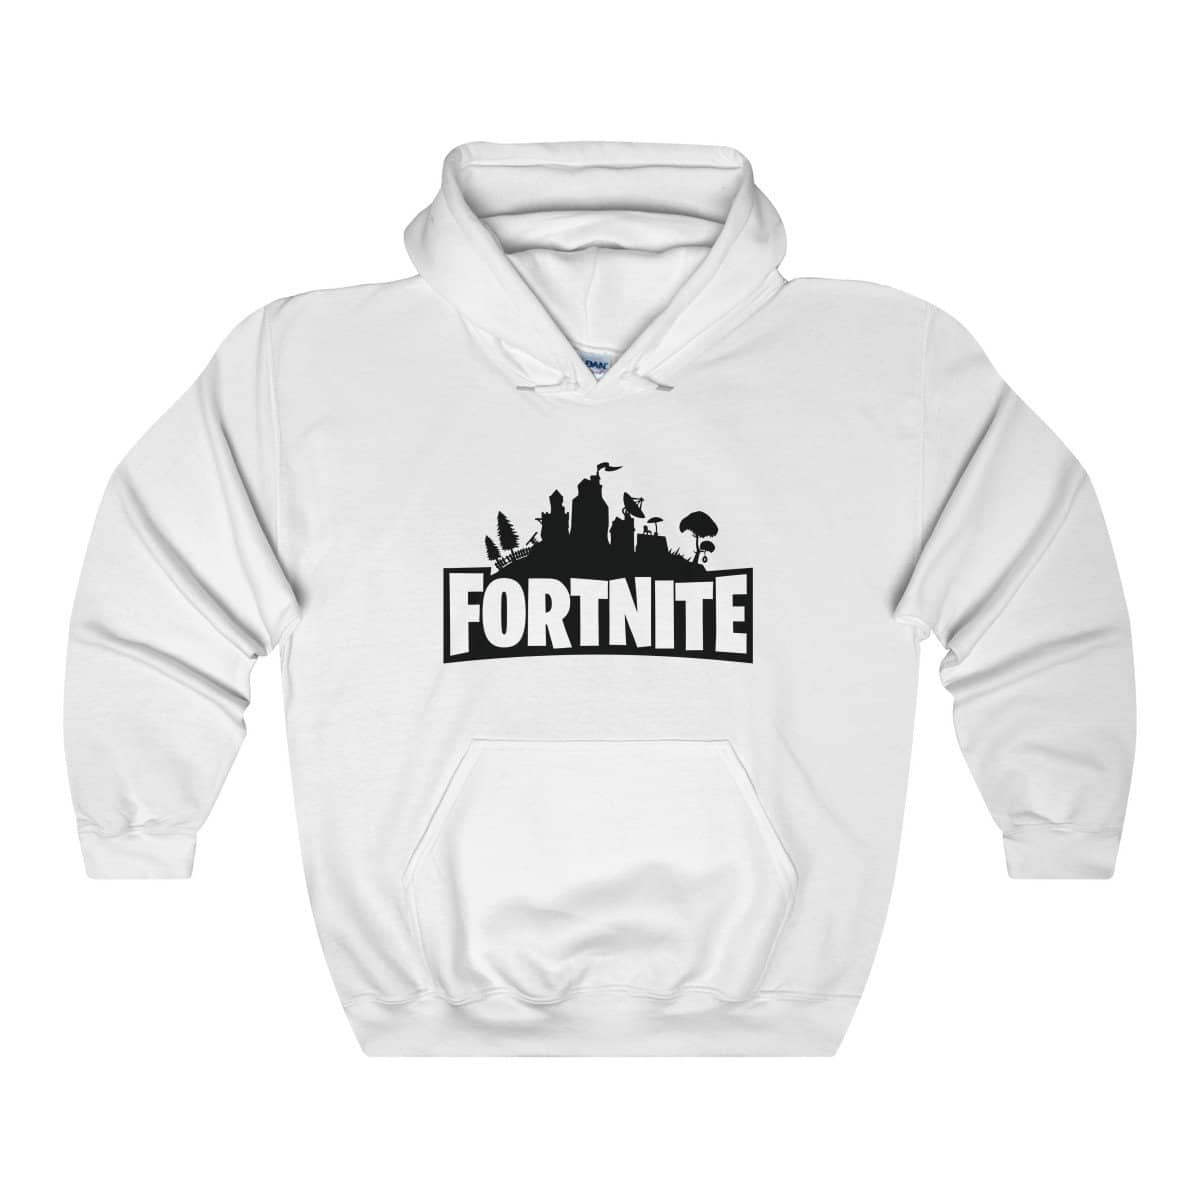 Fortnite Hoodie Fortnite Aimbot Hack Free